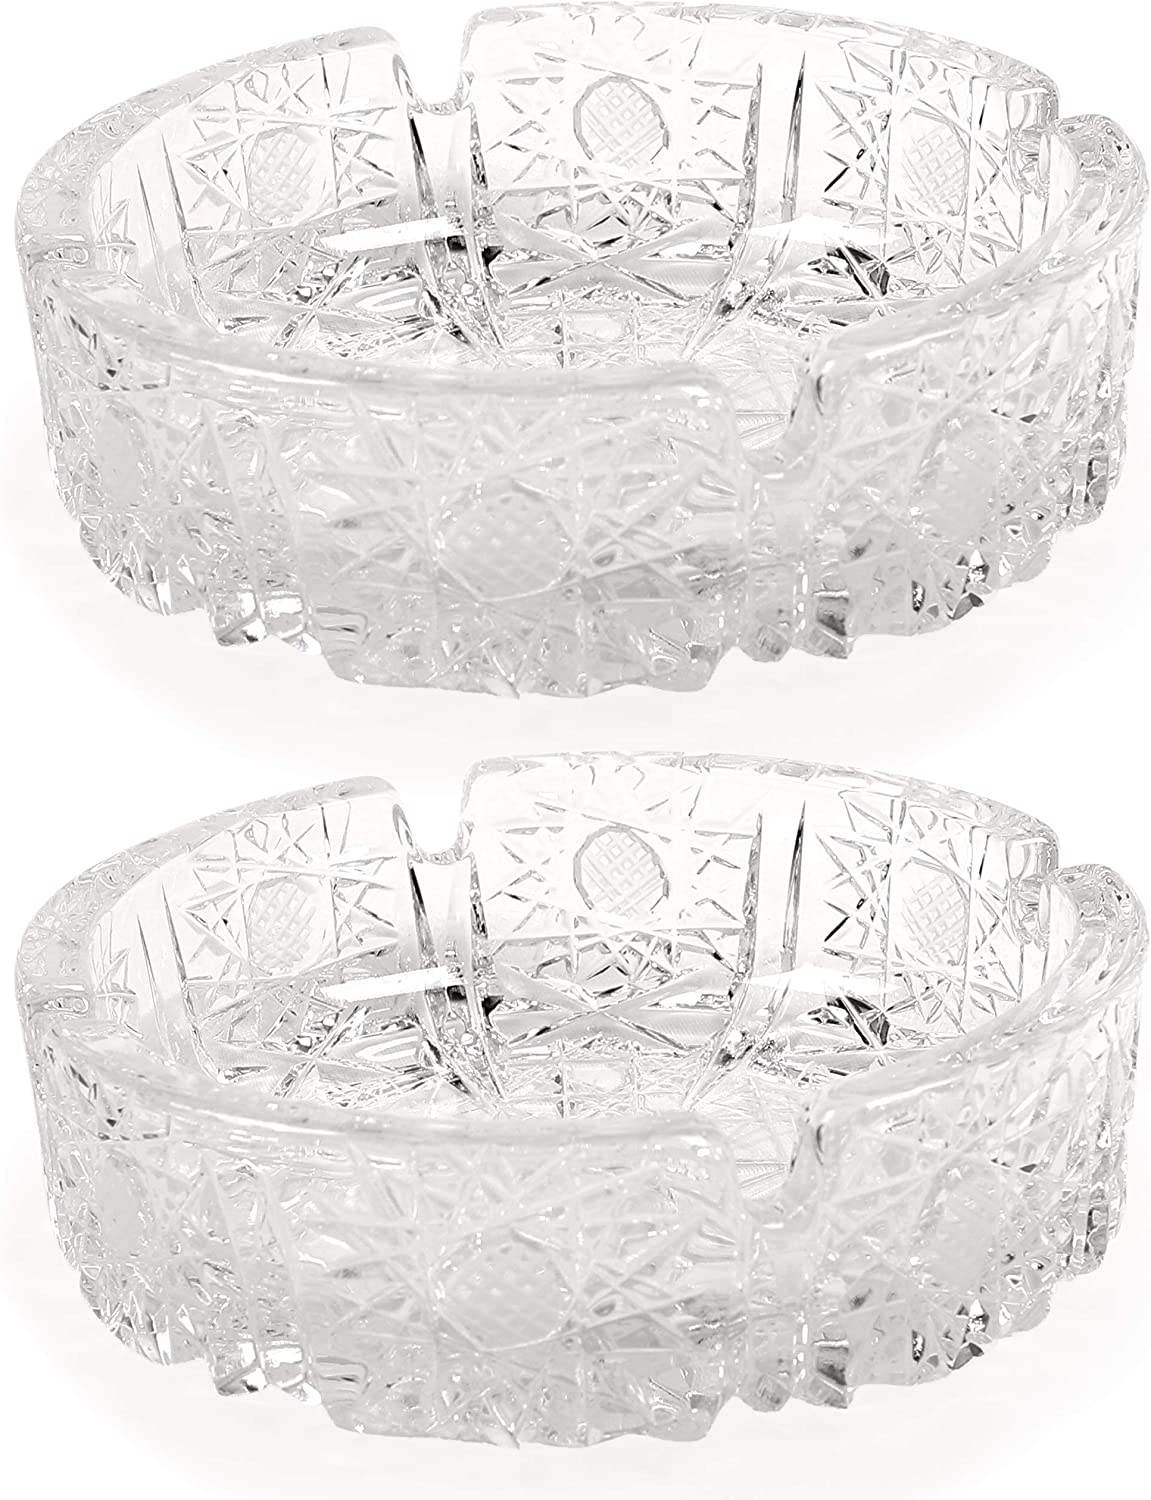 Fargus Glass Ashtrays for Cigarettes, Portable Decorative Modern Ashtray for Home Office Indoor Outdoor Patio Use, Fancy Cute Cool Ash Tray, Pack of 2 (Crystal)